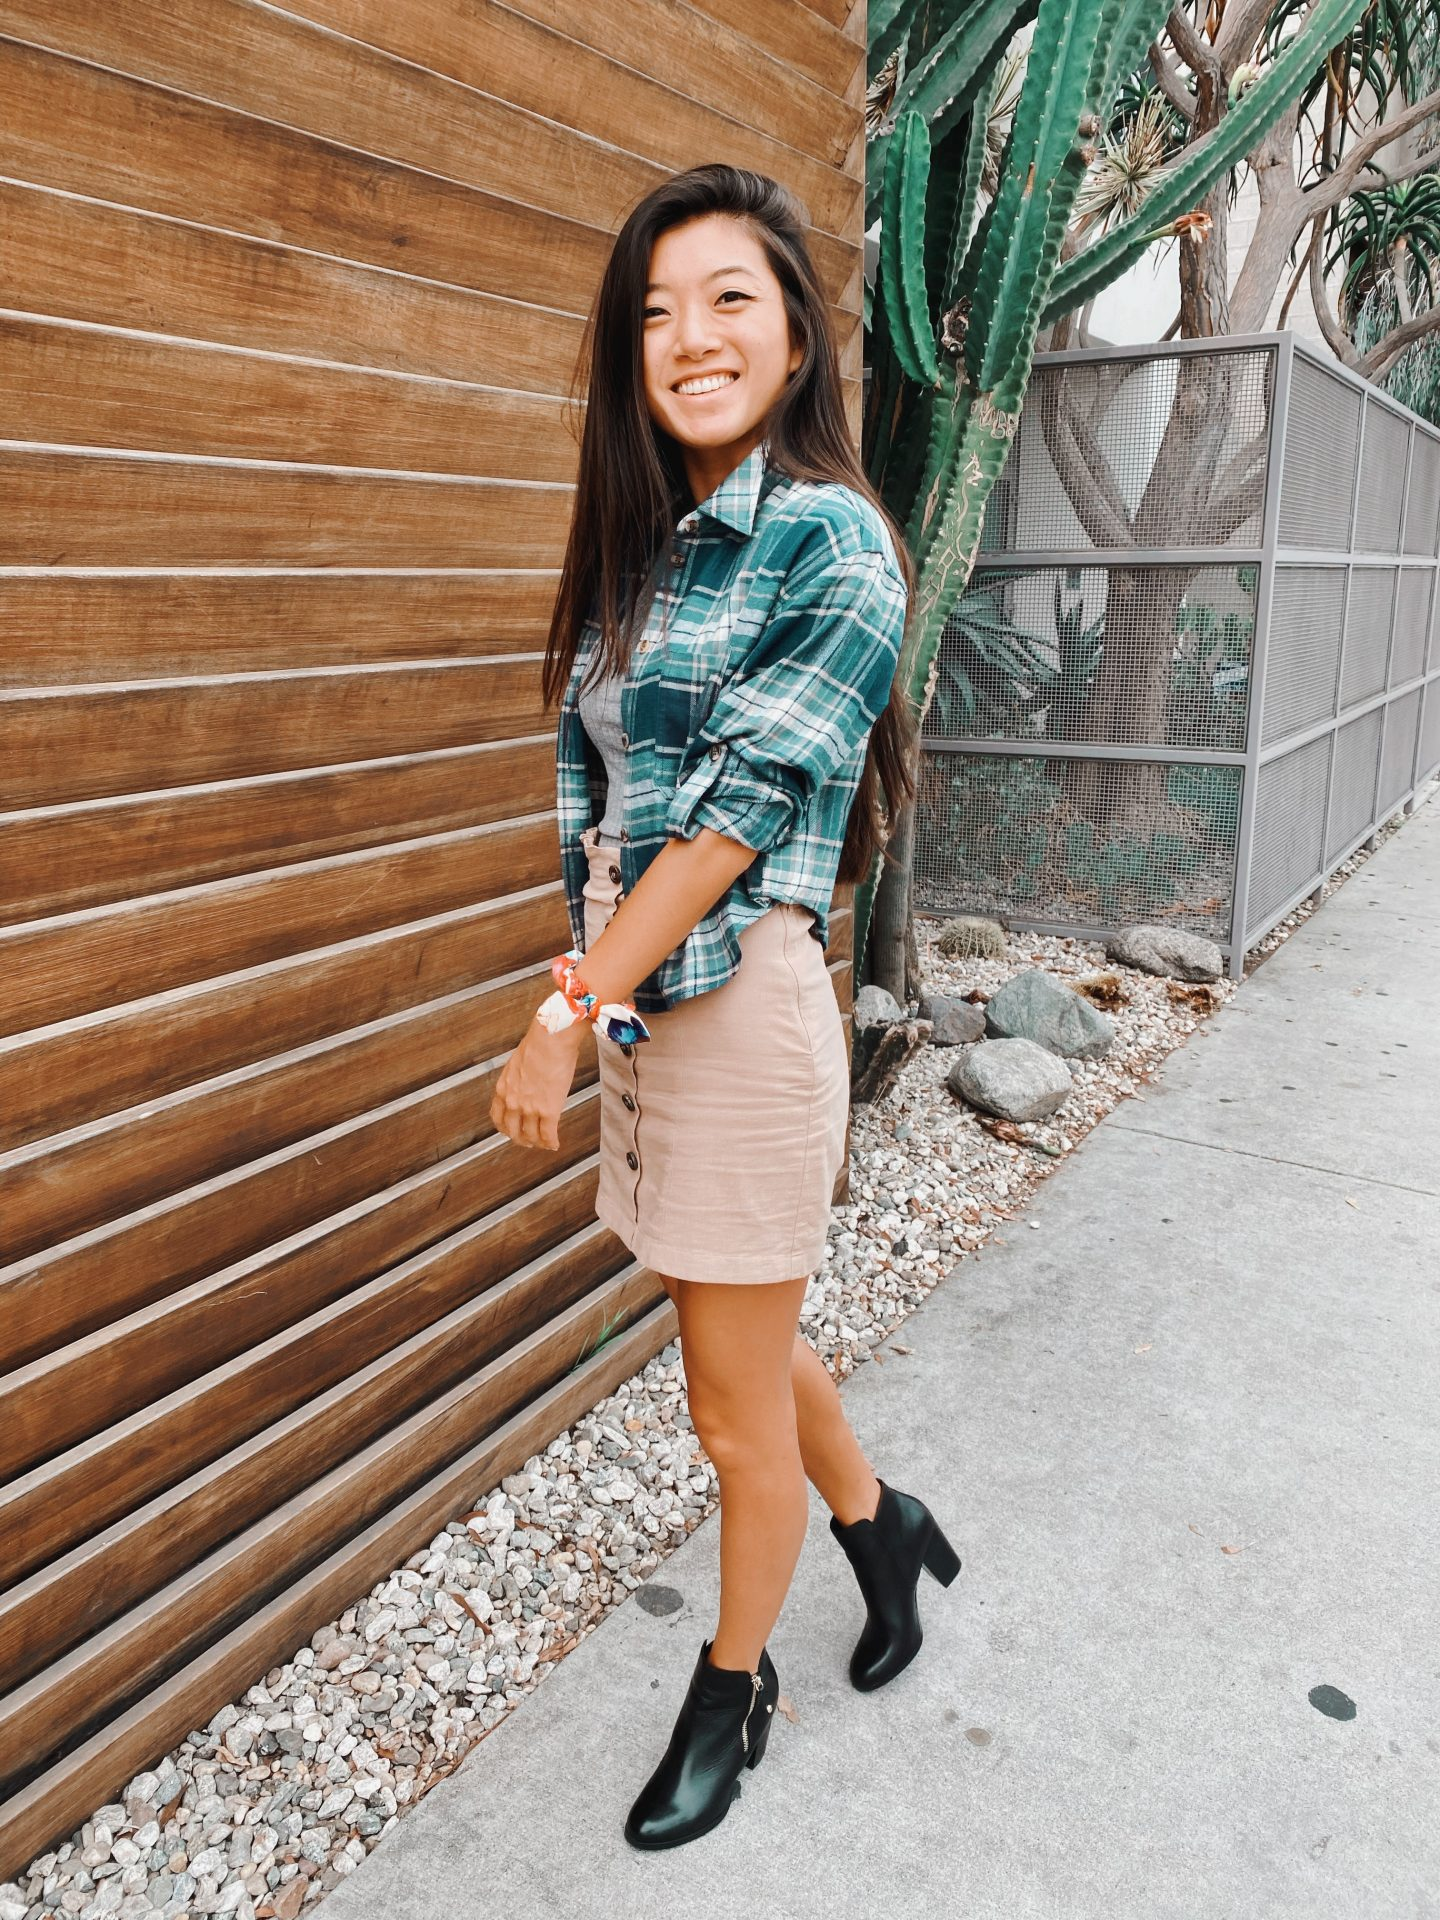 Curious how to style a flannel top? Los Angeles Blogger My Teacher Got Style is sharing her favorite way to style a flannel top here!